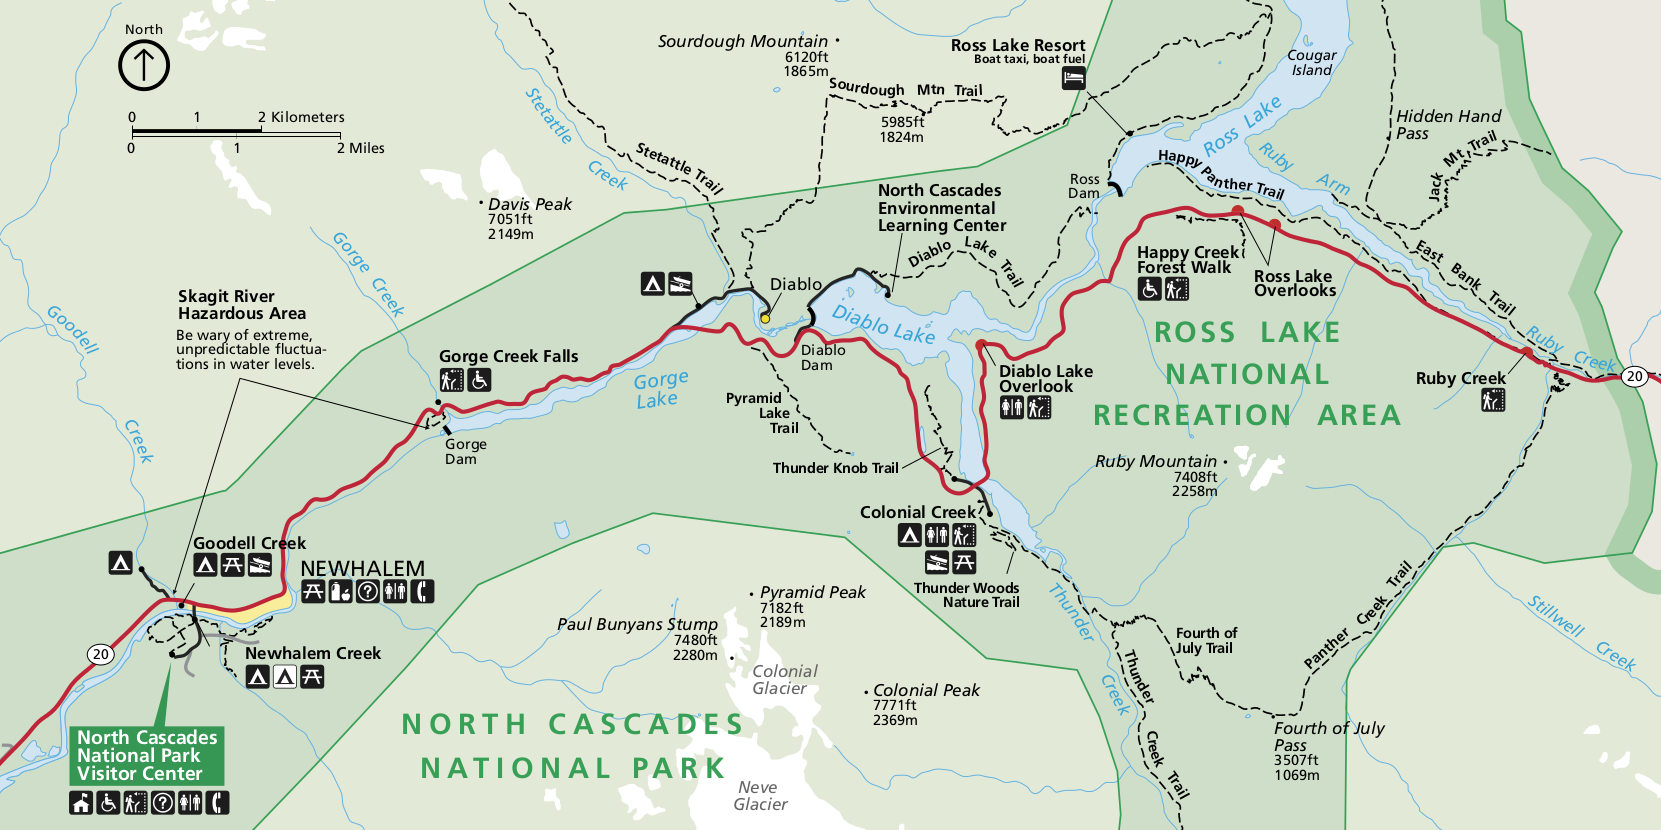 National Parks In Washington State Map.North Cascades Maps Npmaps Com Just Free Maps Period